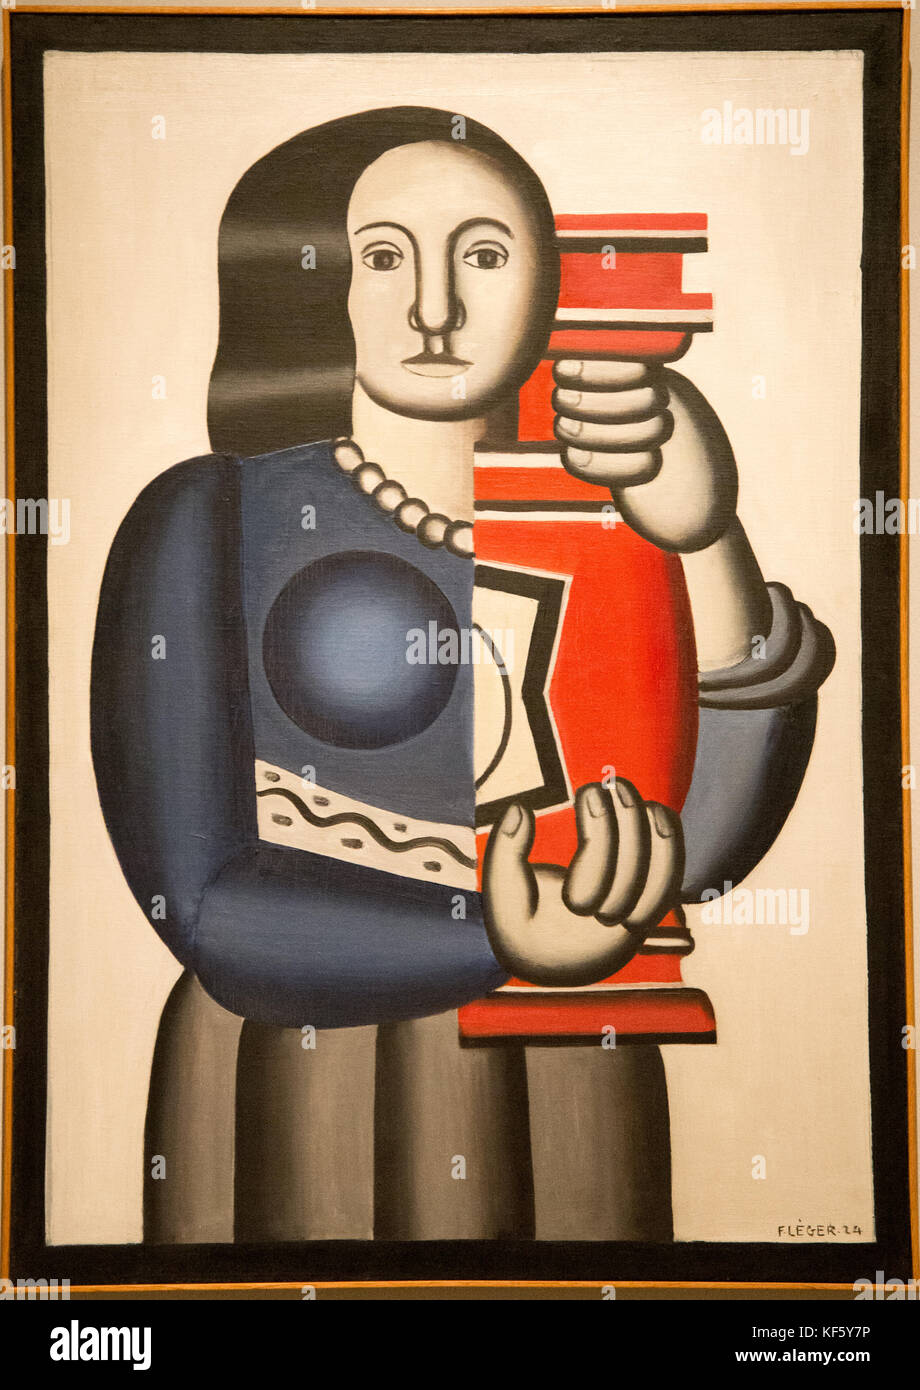 fernand leger stock photos fernand leger stock images page 2 alamy